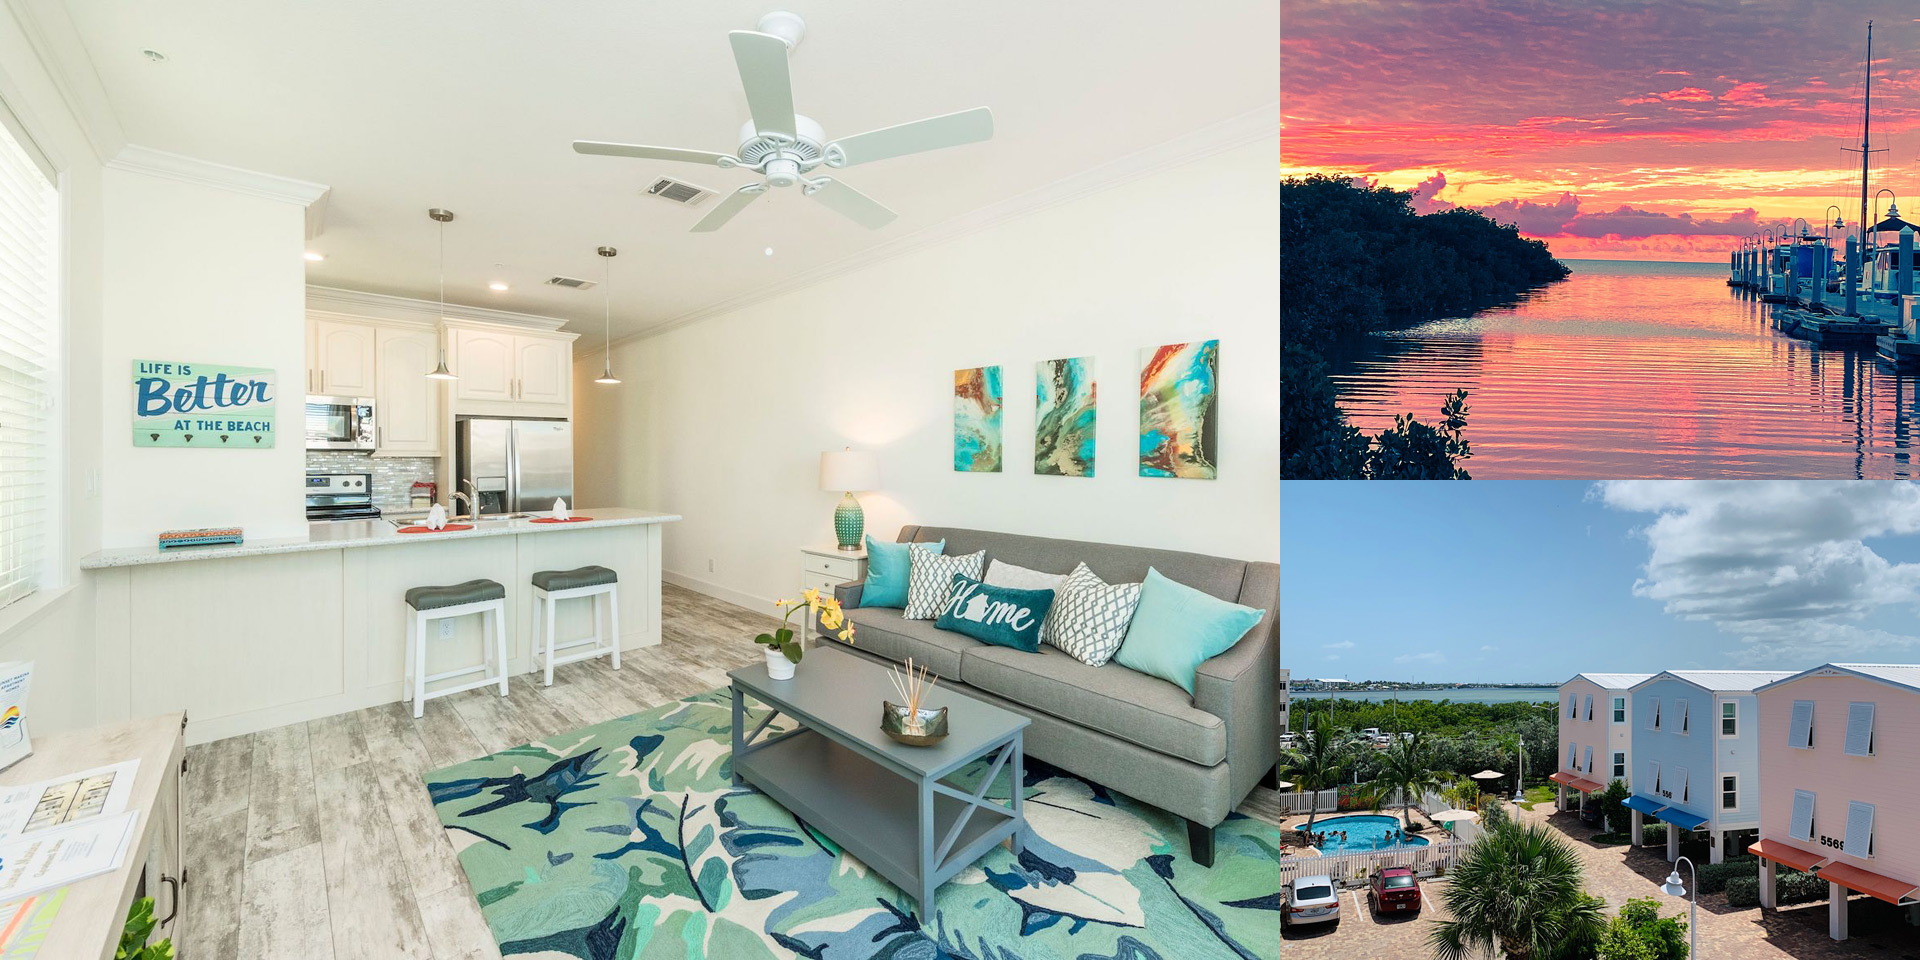 Three image collage. Open concept naturally lit apartment, waterfront sunset sky and aerial view of caribbean color building and pool.